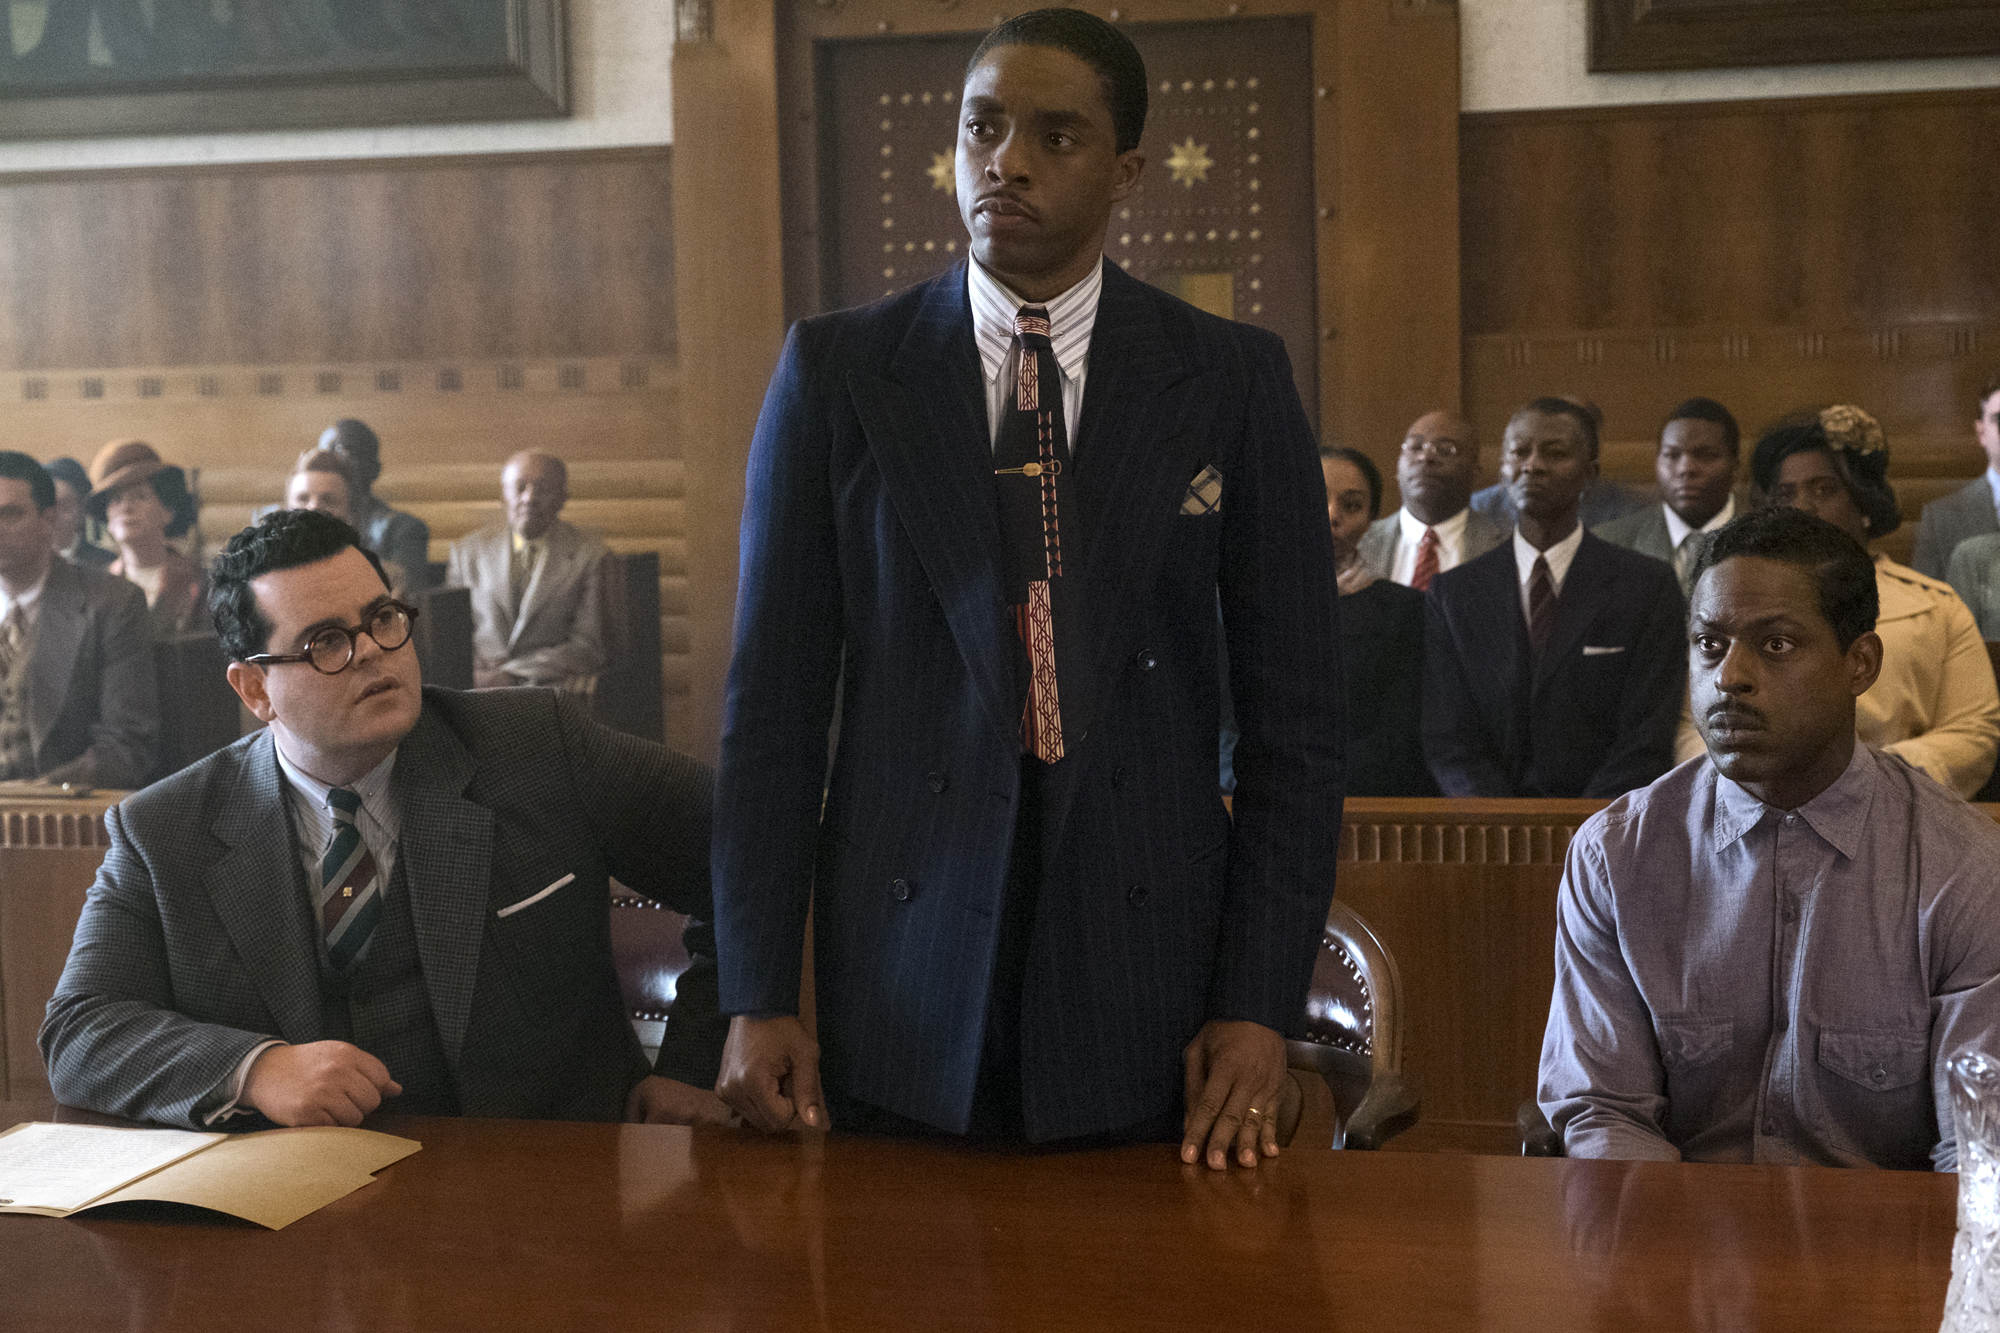 Josh Gad, Chadwick Boseman and Sterling K. Brown in a scene from Marshall